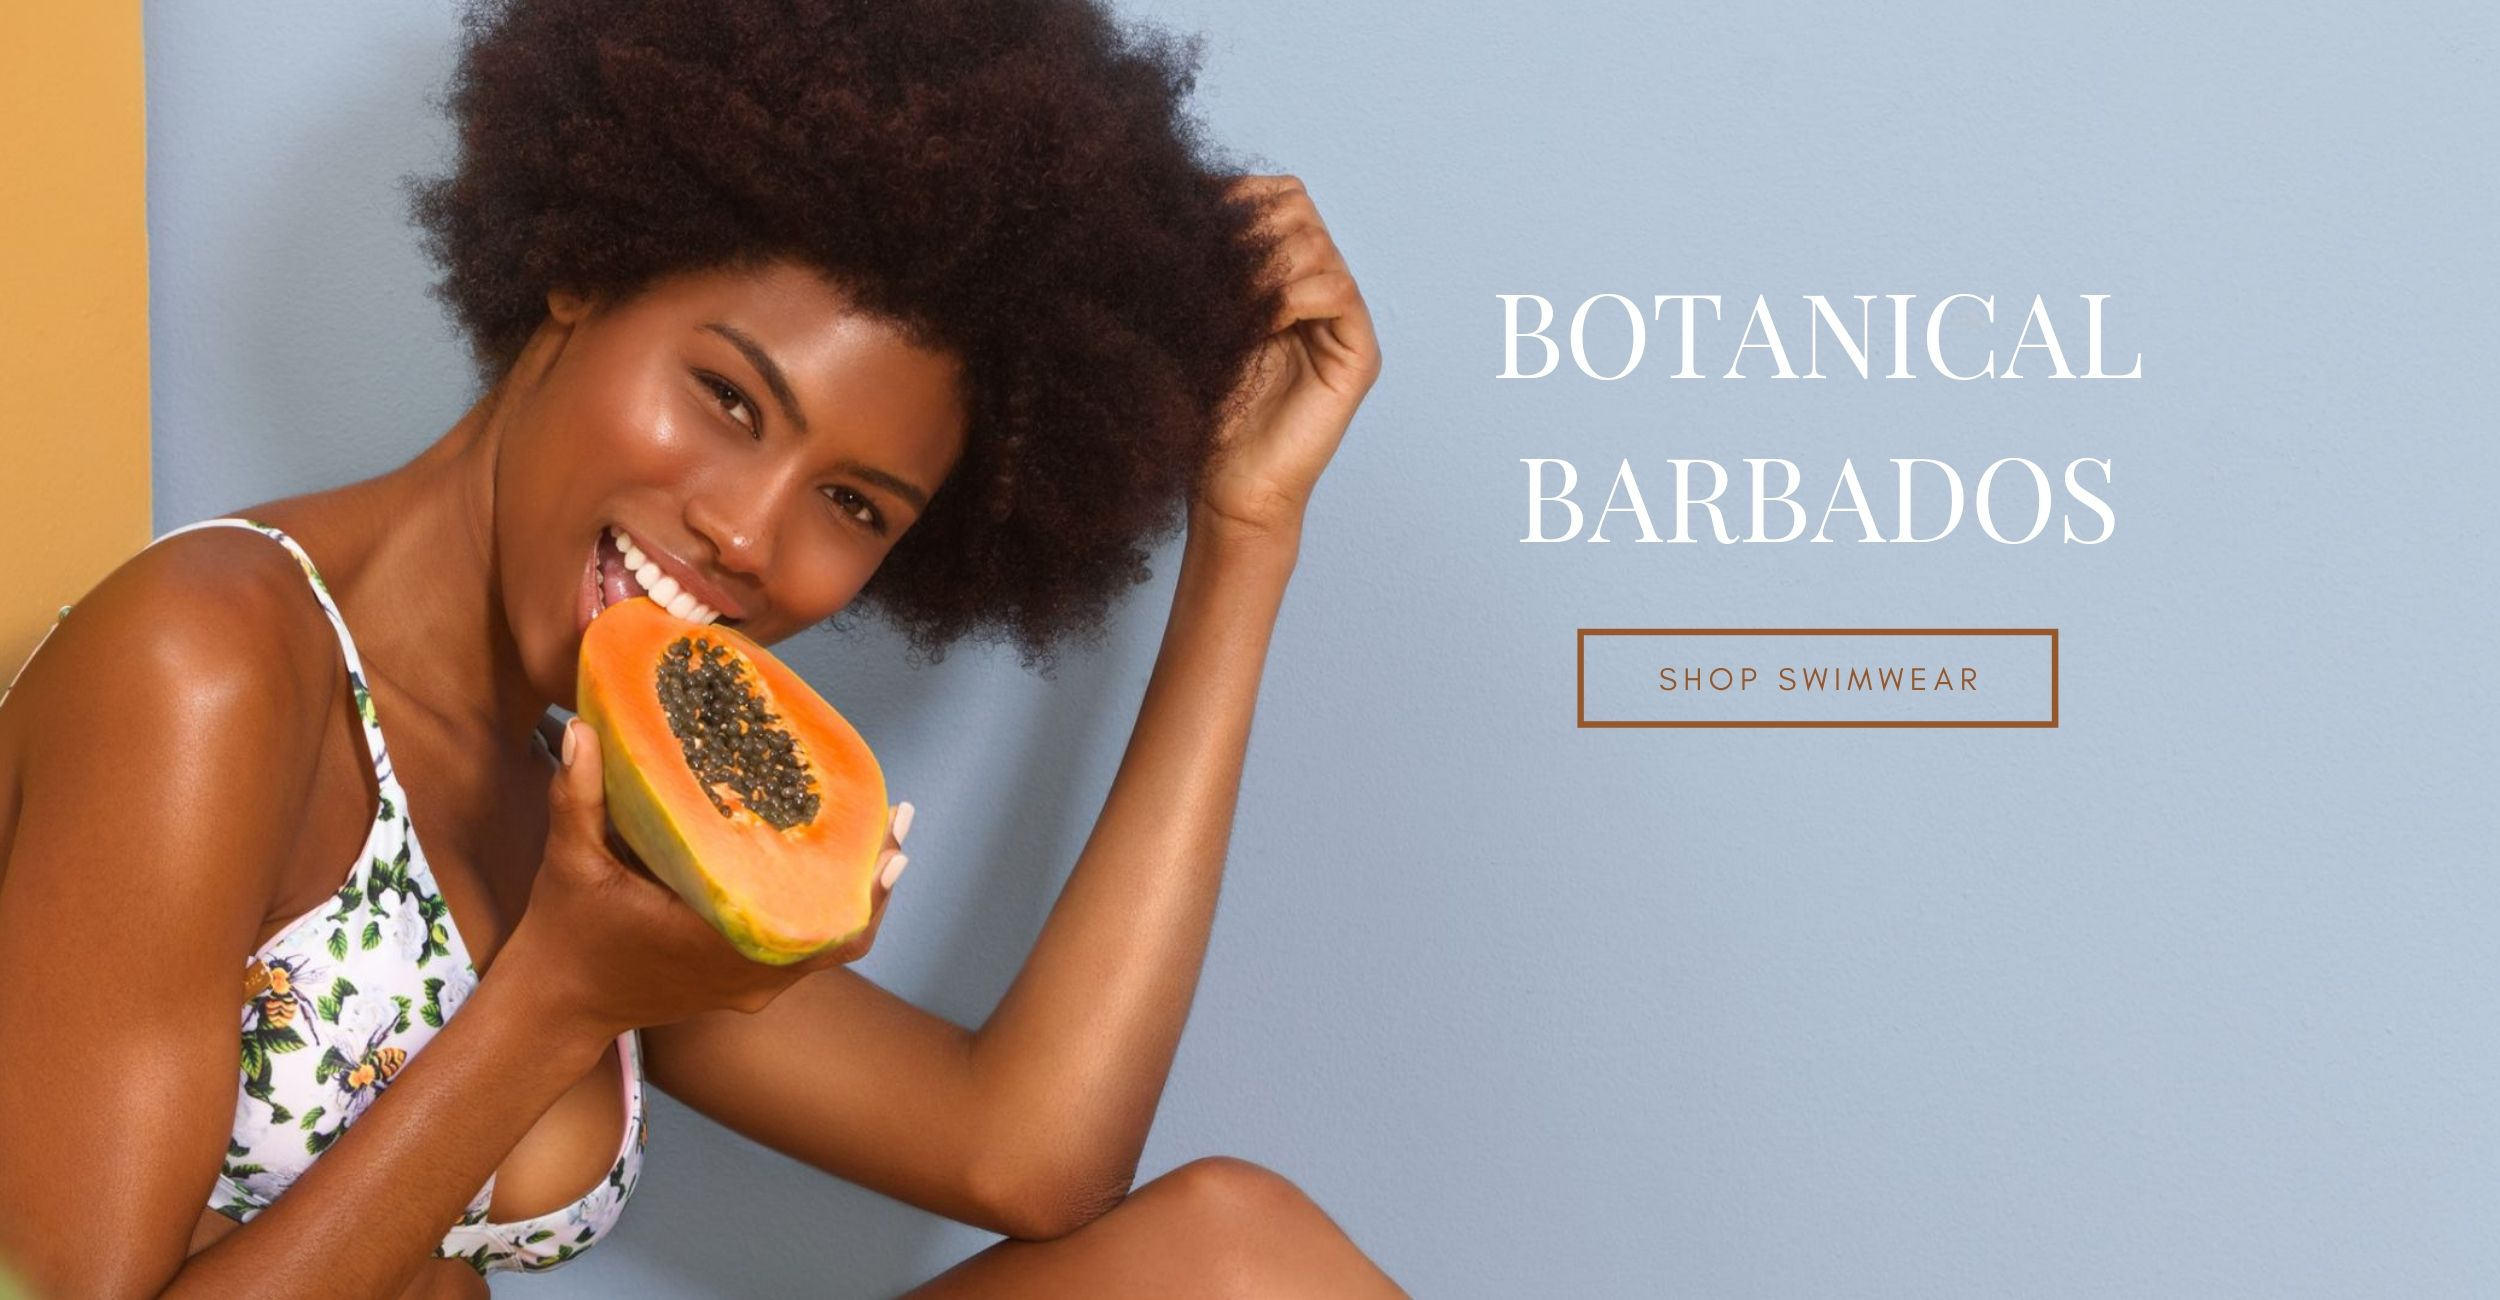 SeaReinas-swimwear-botanical-barbados-collection-2019.jpg